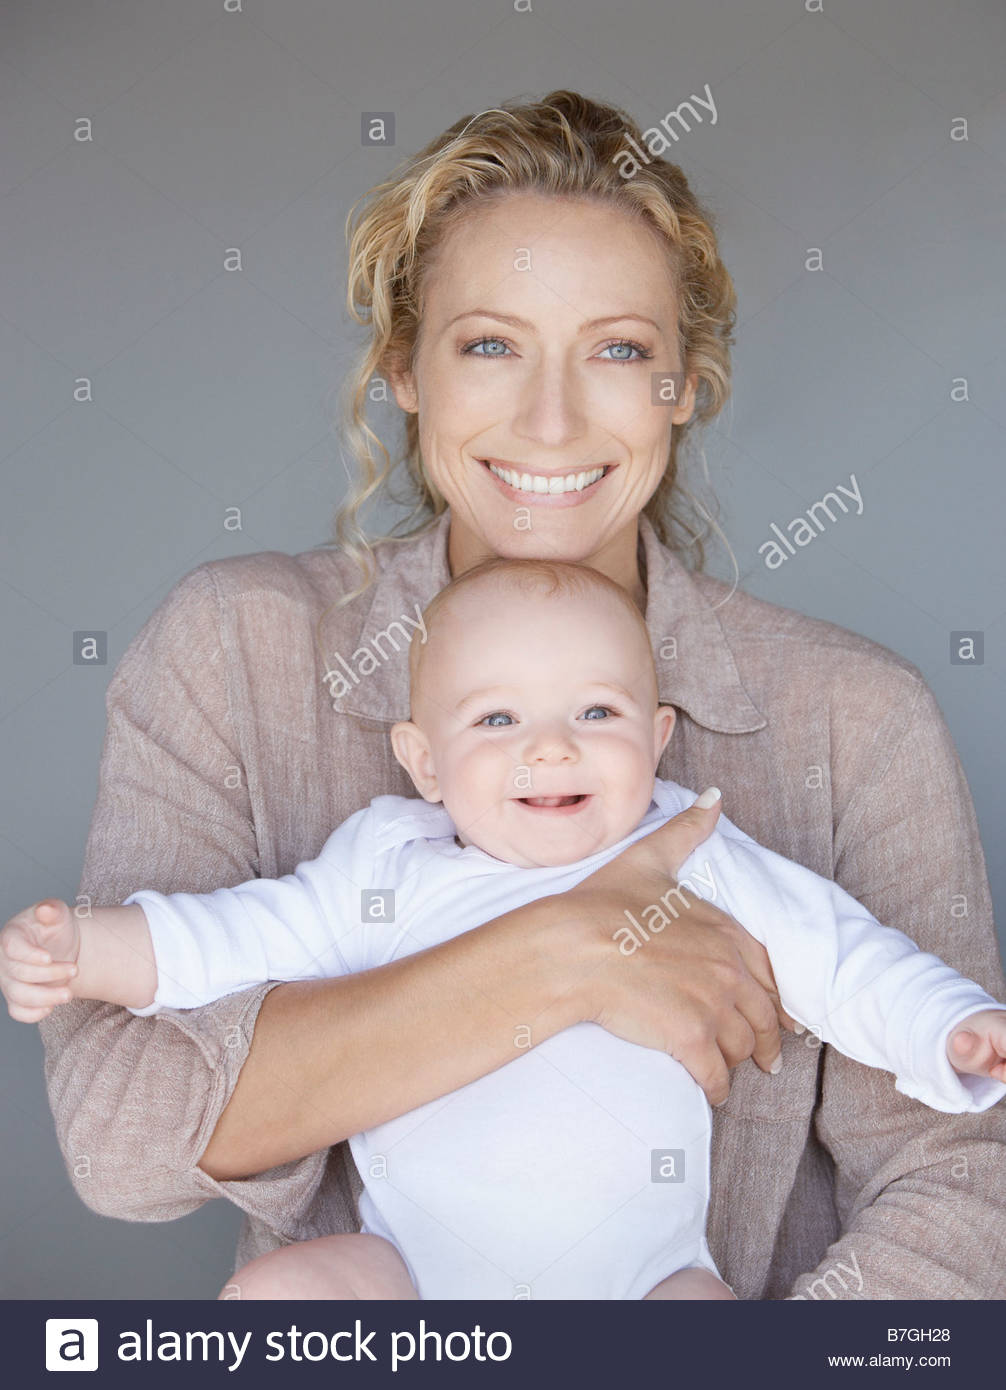 '30-35 Years,30s,6-9 Months,Baby Boys,Affection,Beginnings,Color Image,Cuddling,Day,Embracing,Family,Family - Stock Image